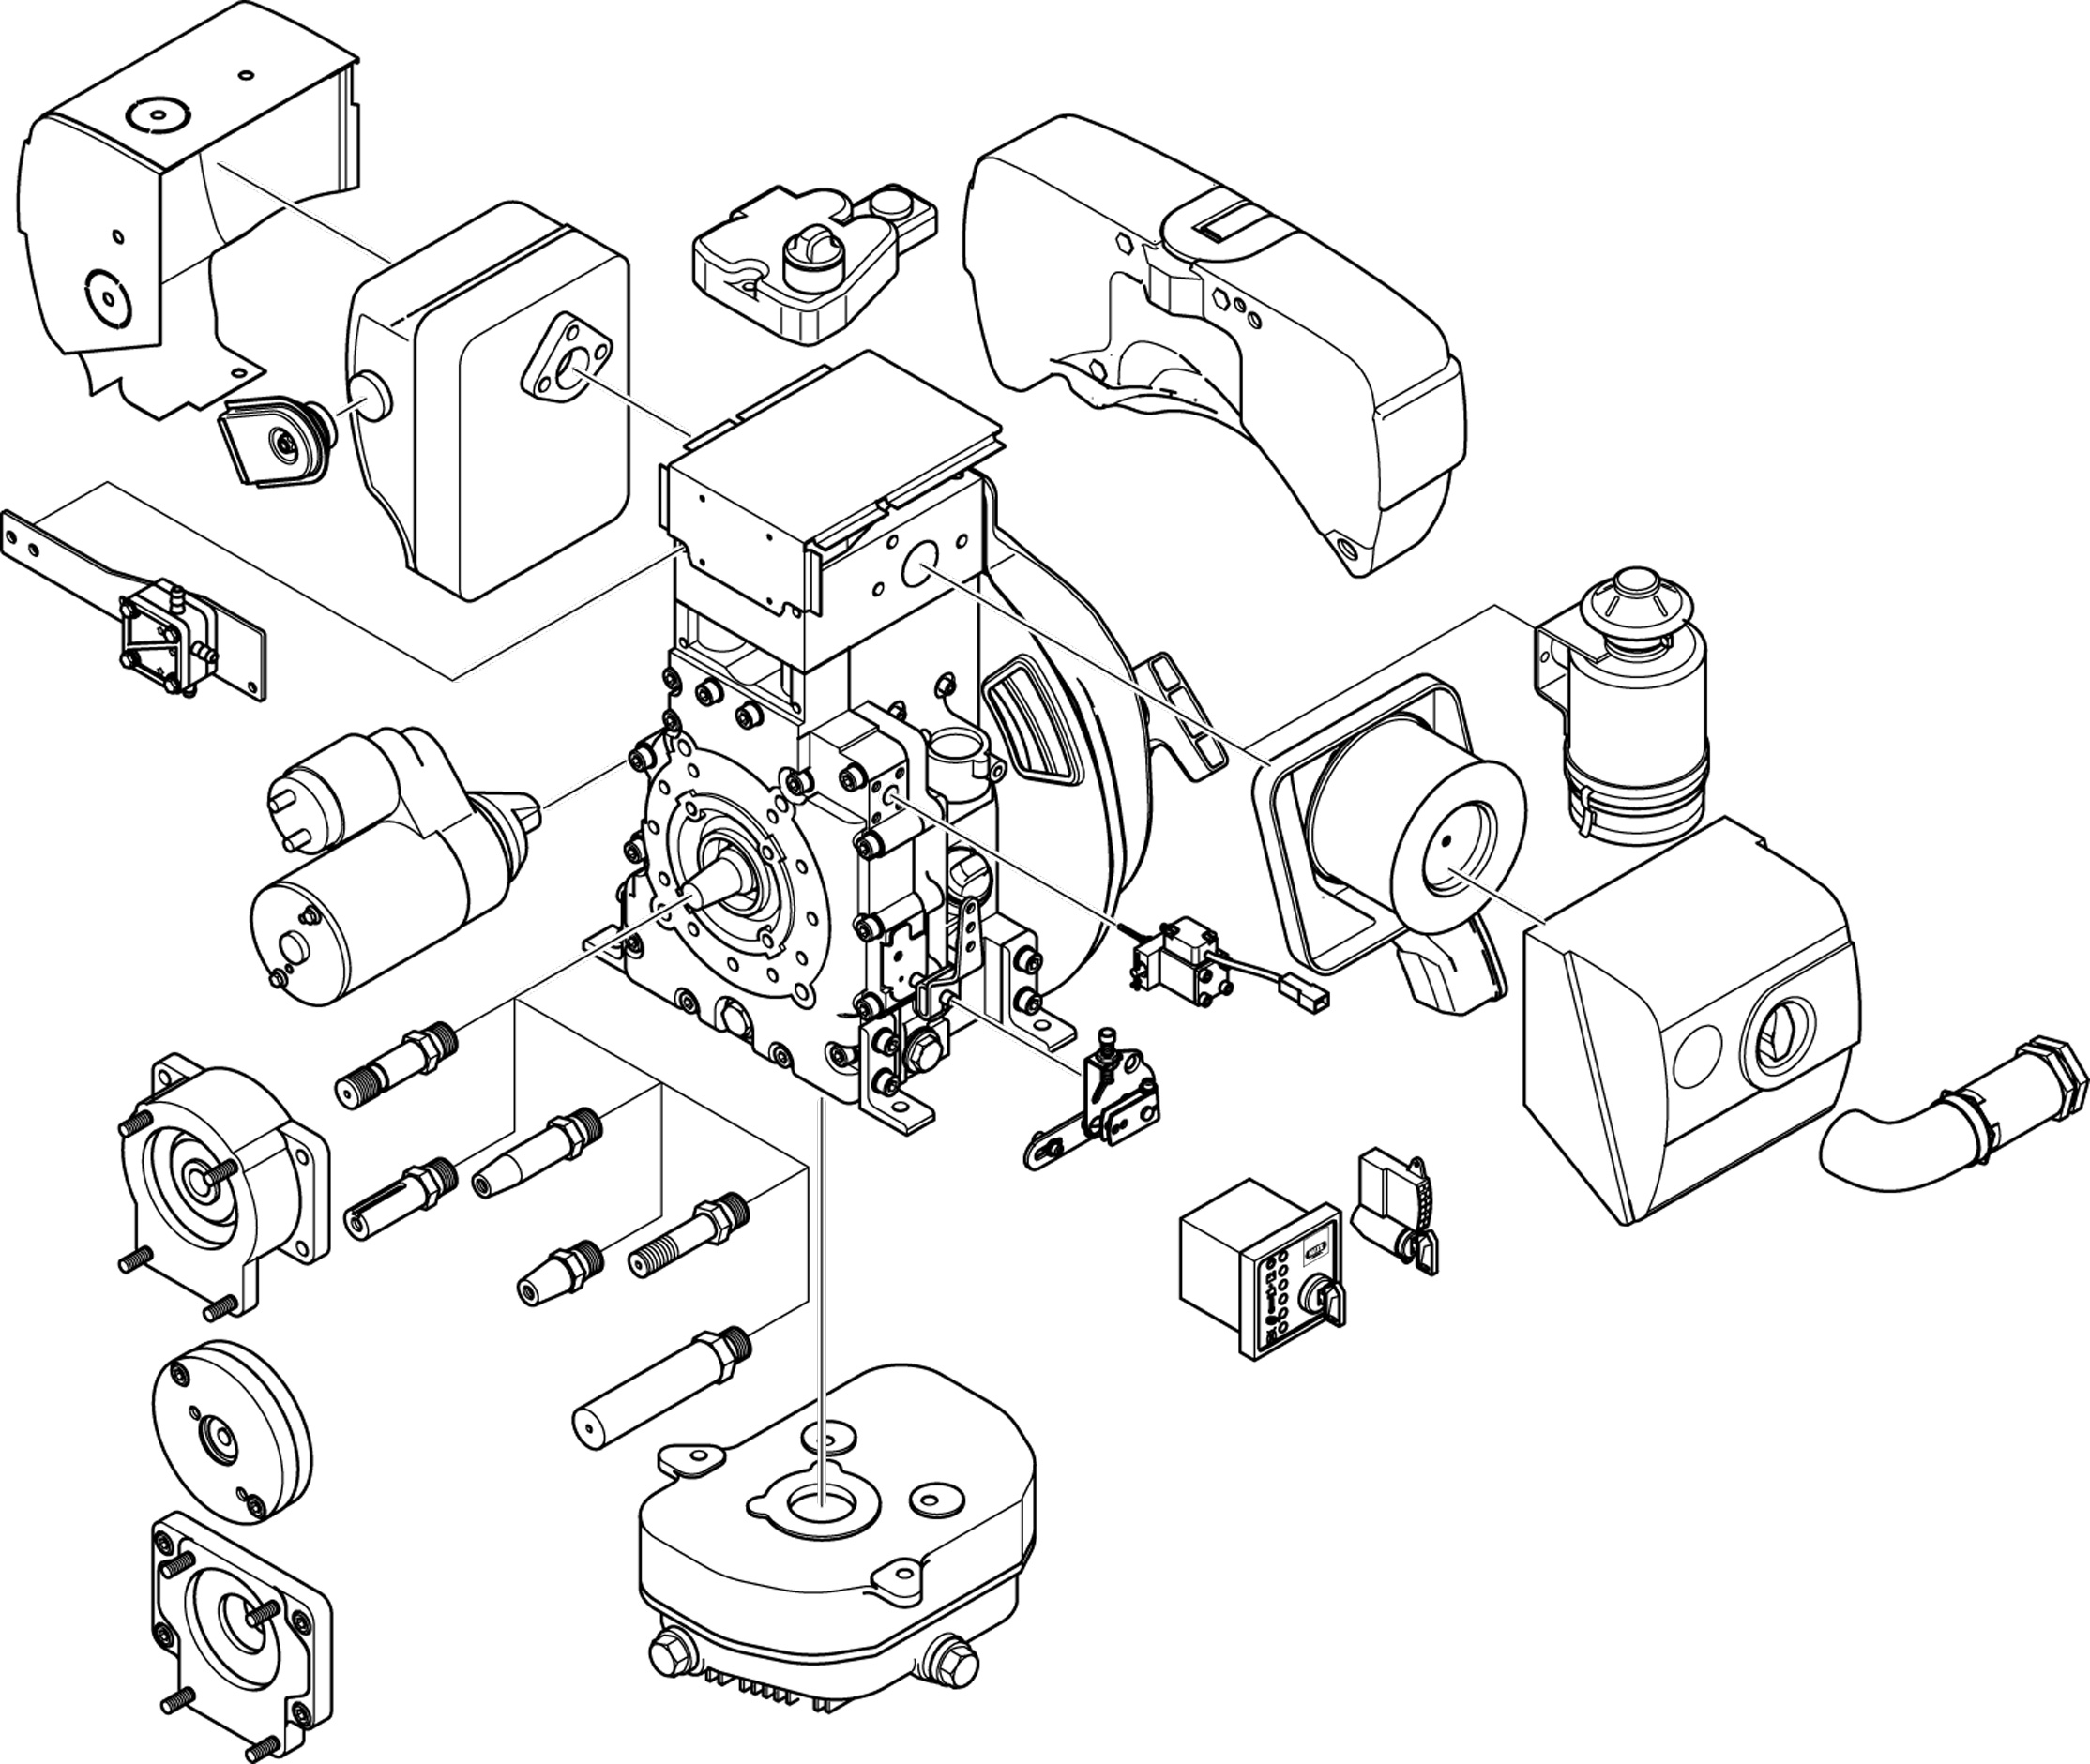 Engine Parts Drawing At Free For Personal Use 1999 F350 Diagram 2228x1881 B Series Small Diesel Single Cylinder